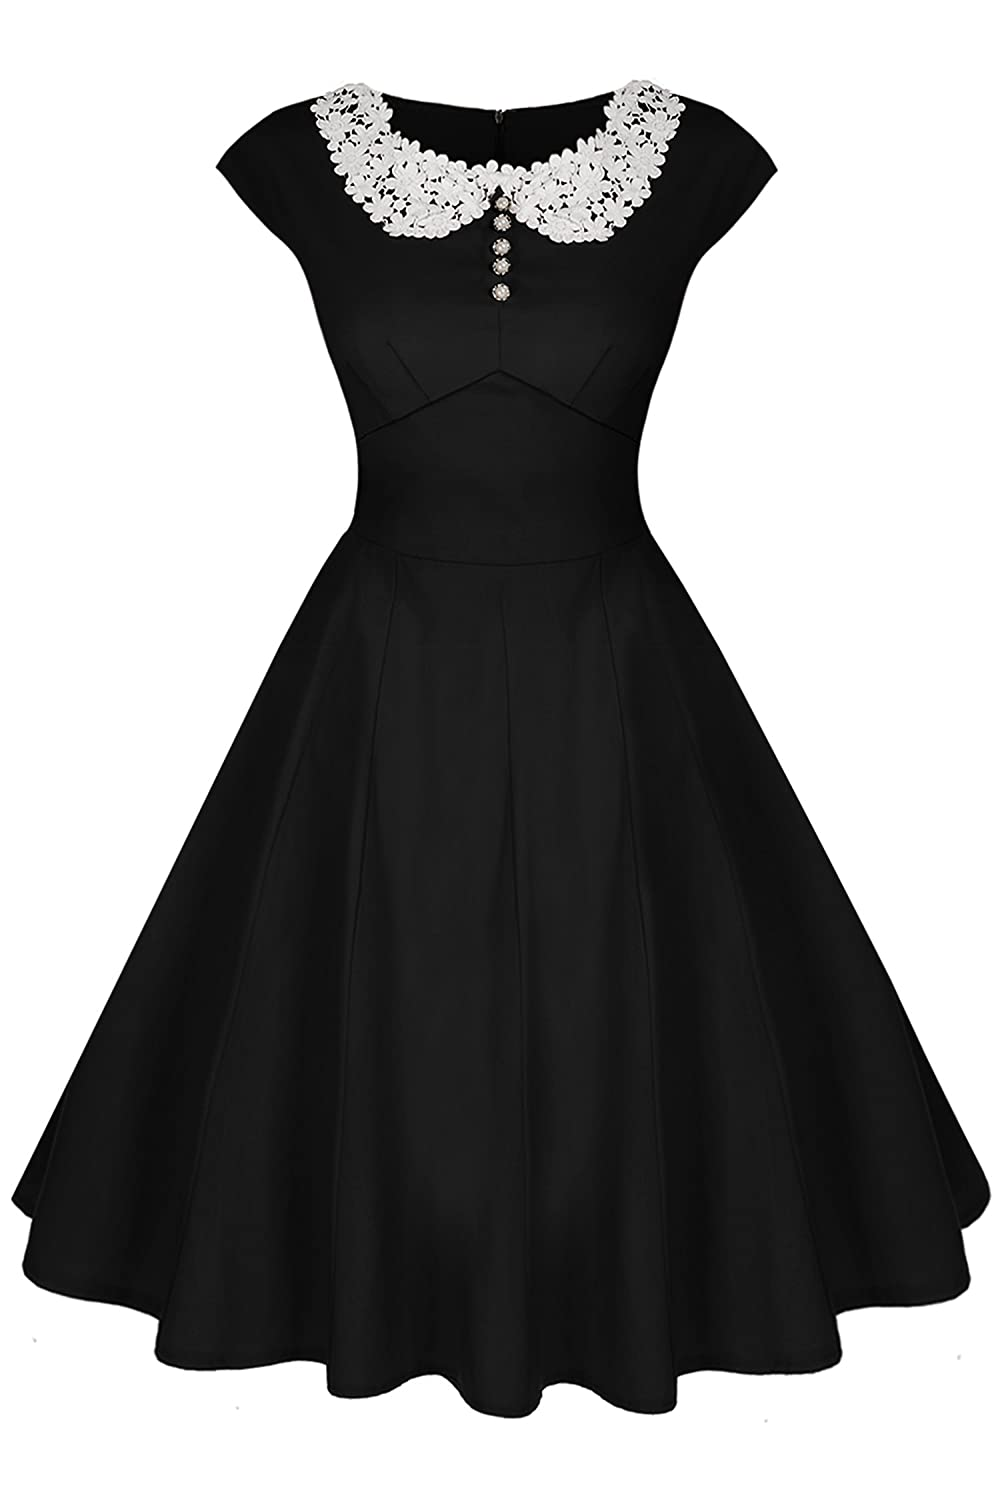 1950s Housewife Dress | 50s Day Dresses Audrey Hepburn Style 1940s Rockabilly Evening Dress  AT vintagedancer.com